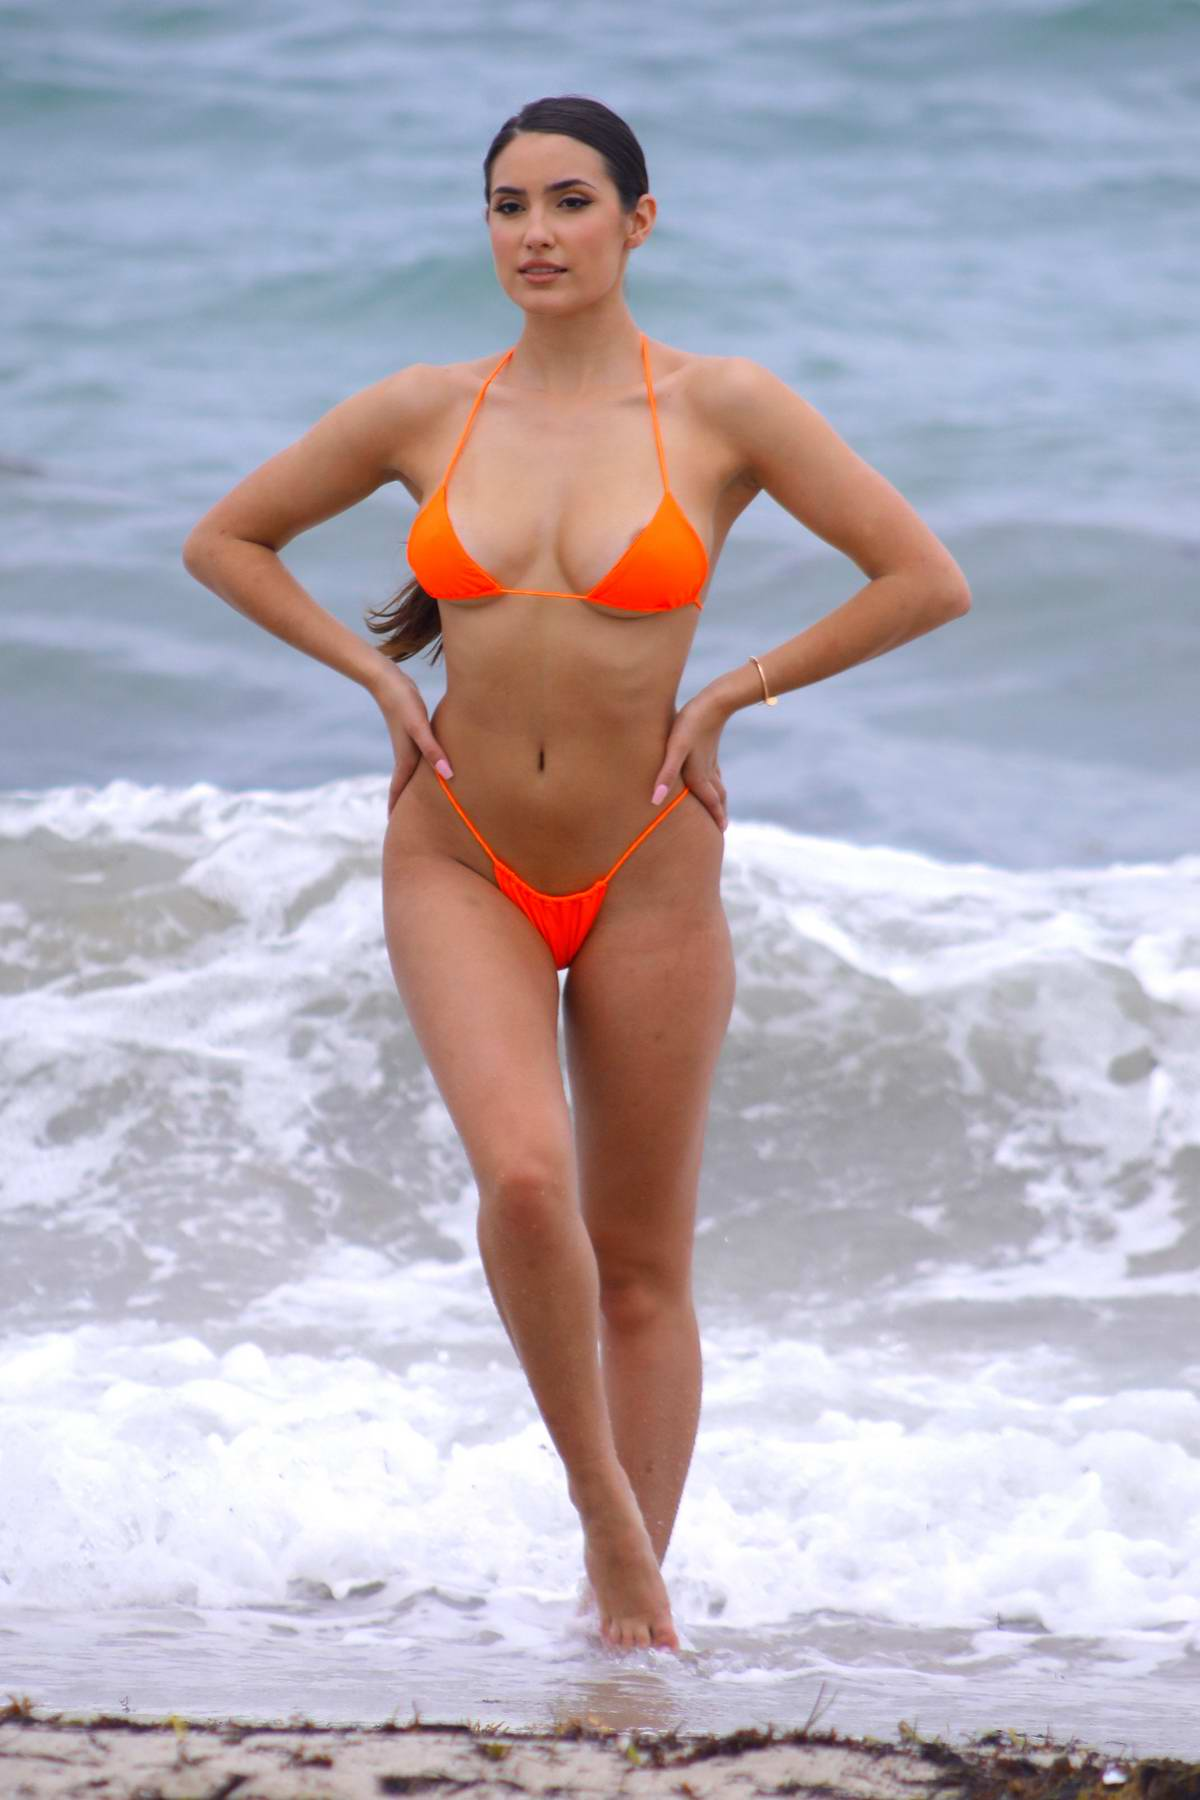 Tao Wickrath hits the beach in a bright orange bikini during Miami Swim Week in Miami Beach, Florida